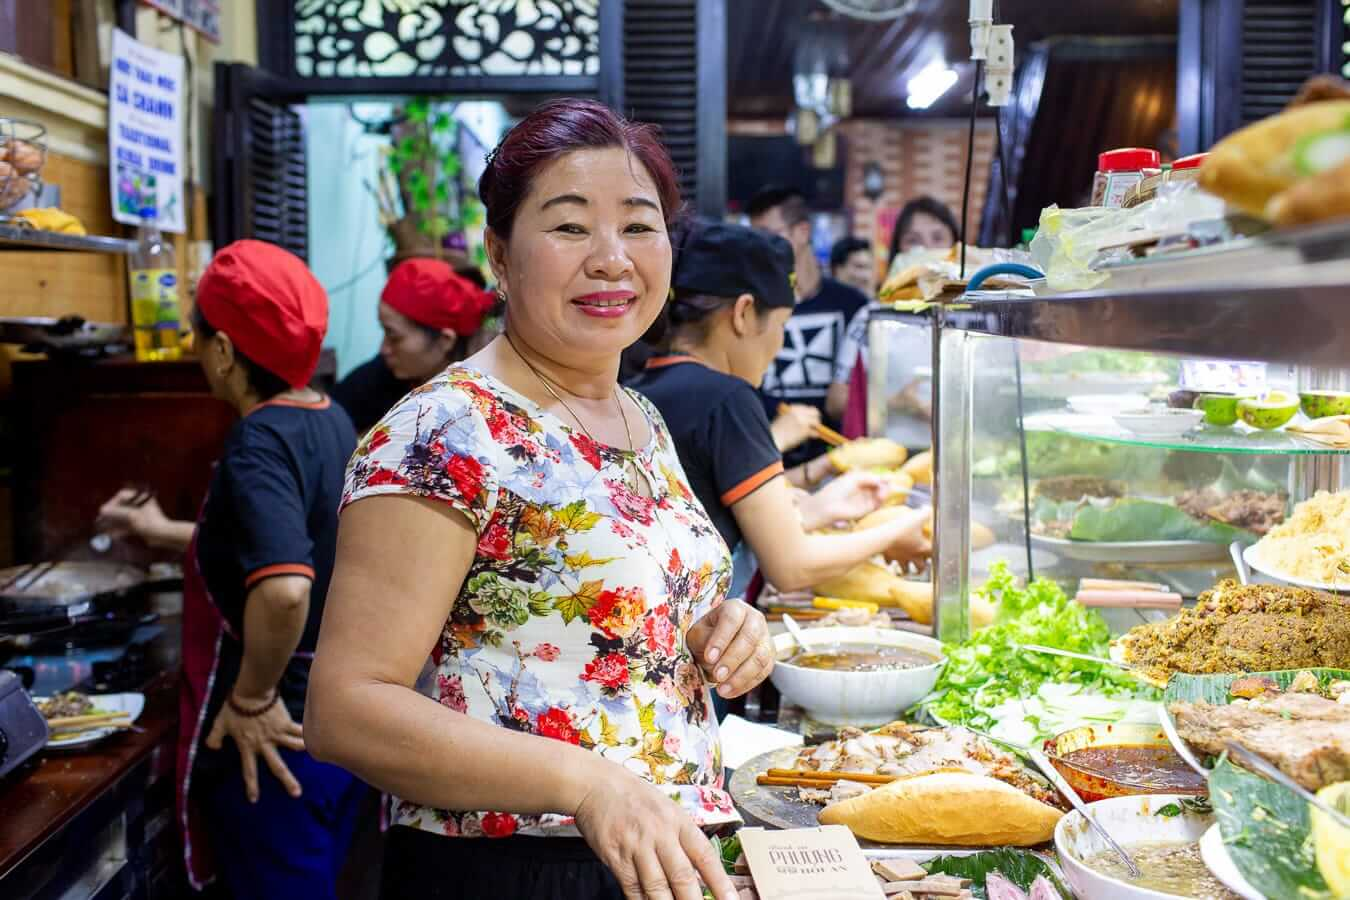 Madame Phuong working alongside her staff at Banh Mi Phuong